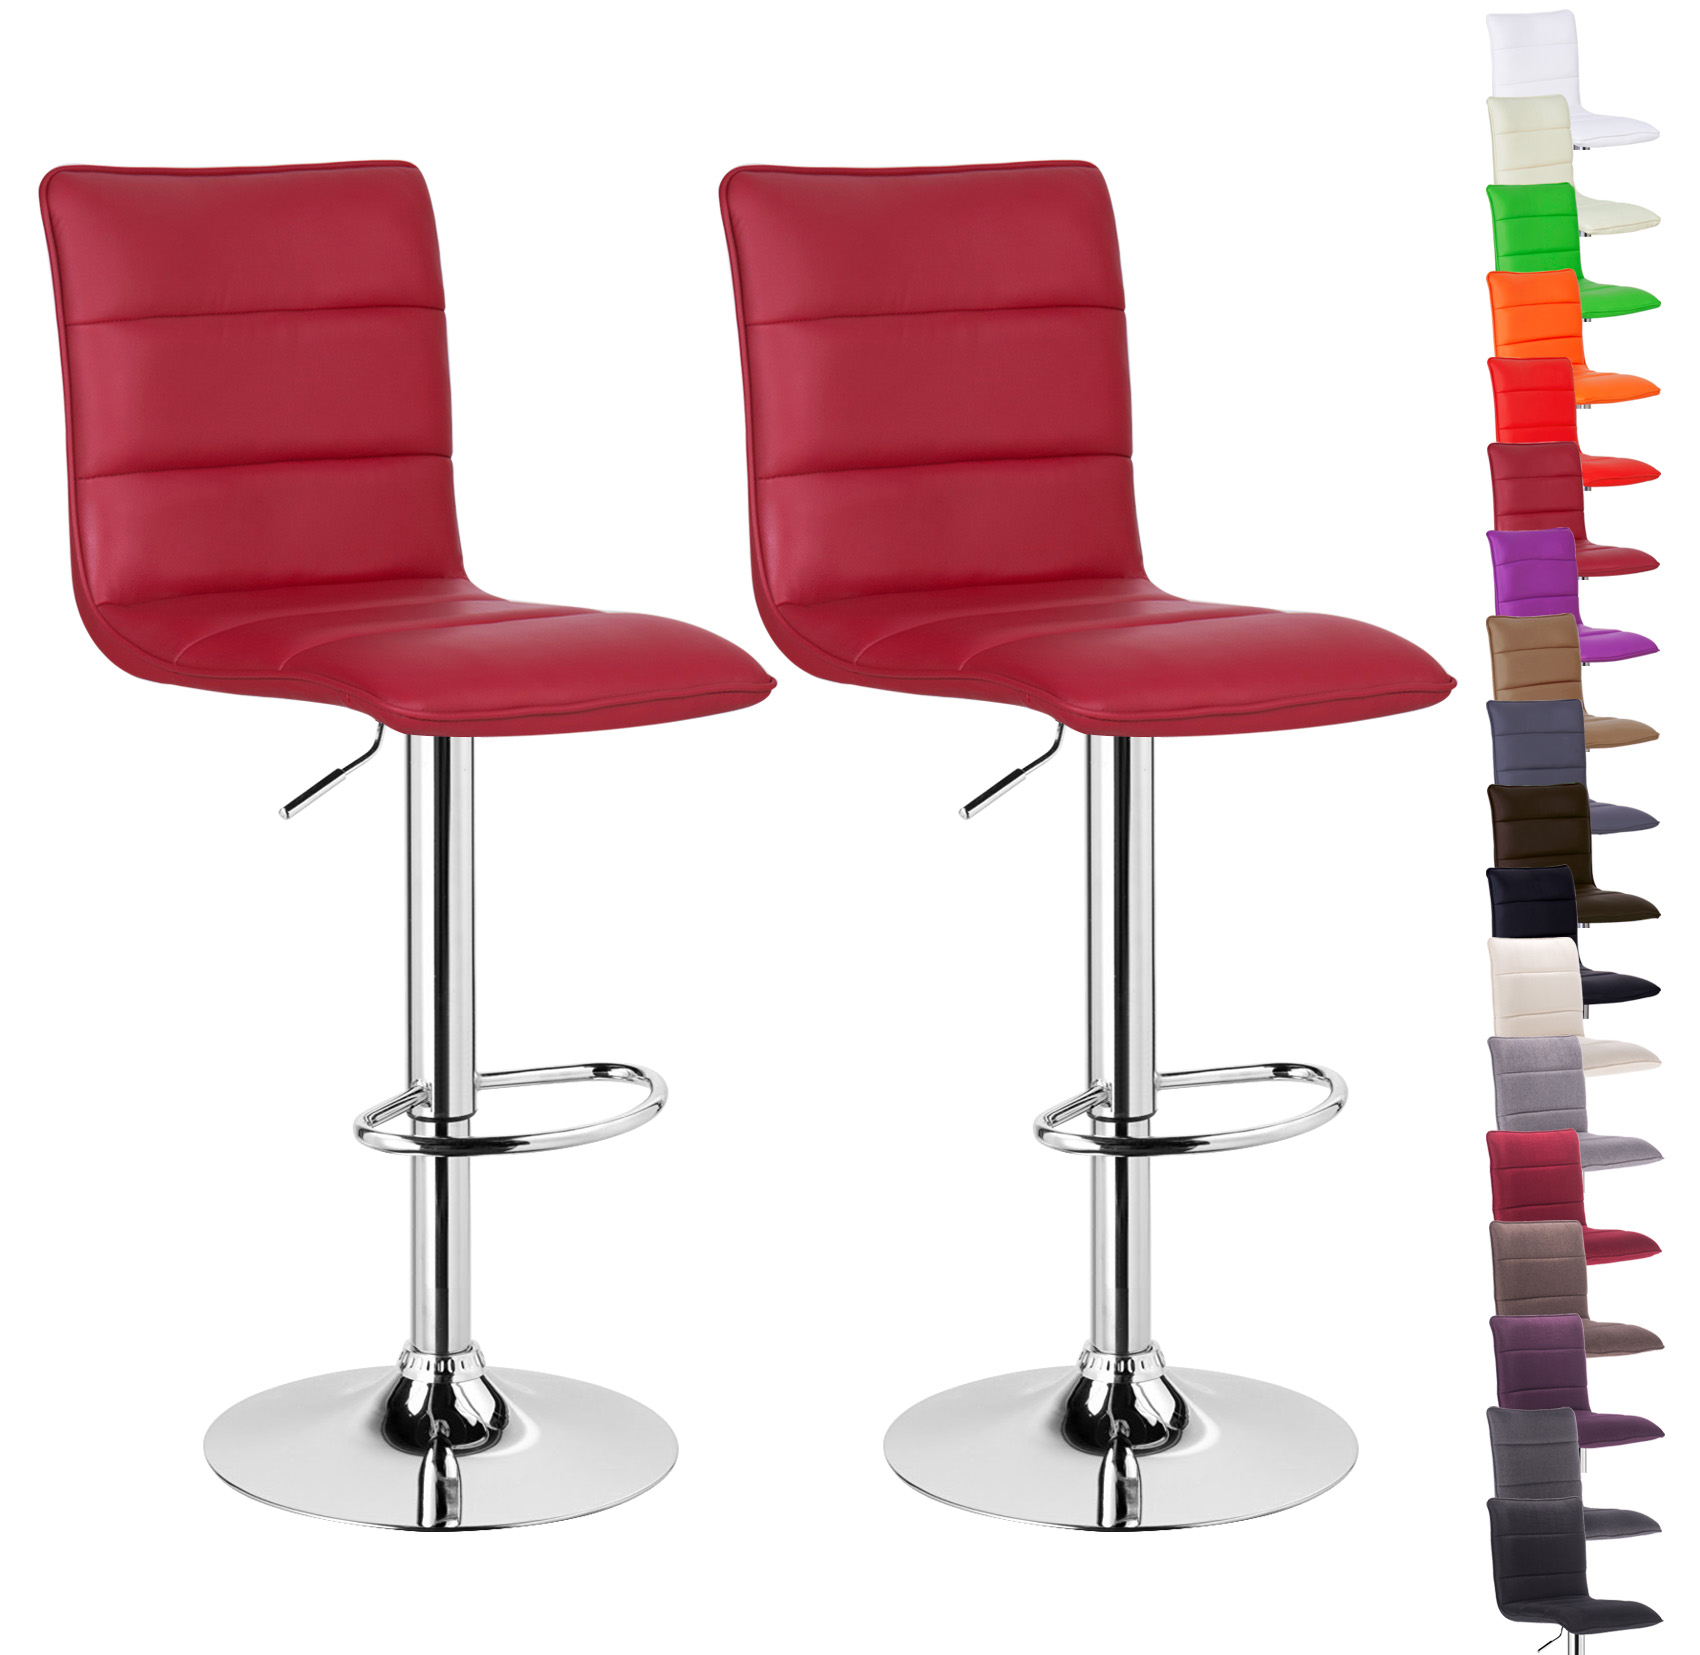 stool chair red dining covers cape town bar stools set of 2 1 faux leather adjust breakfast